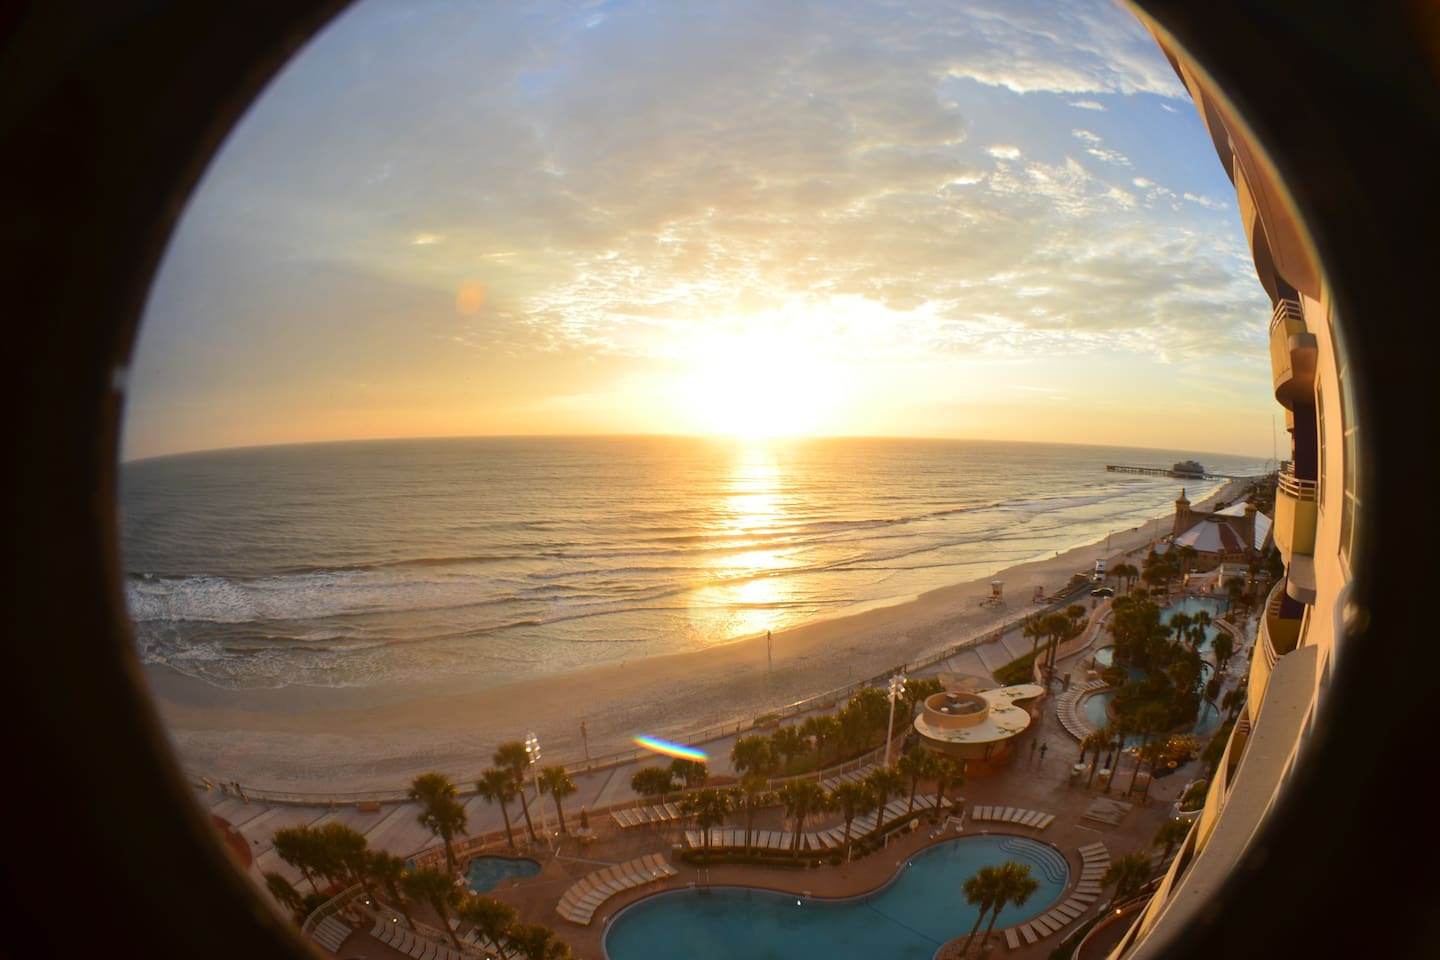 A fish eye capture from the balcony- romance is in the air.